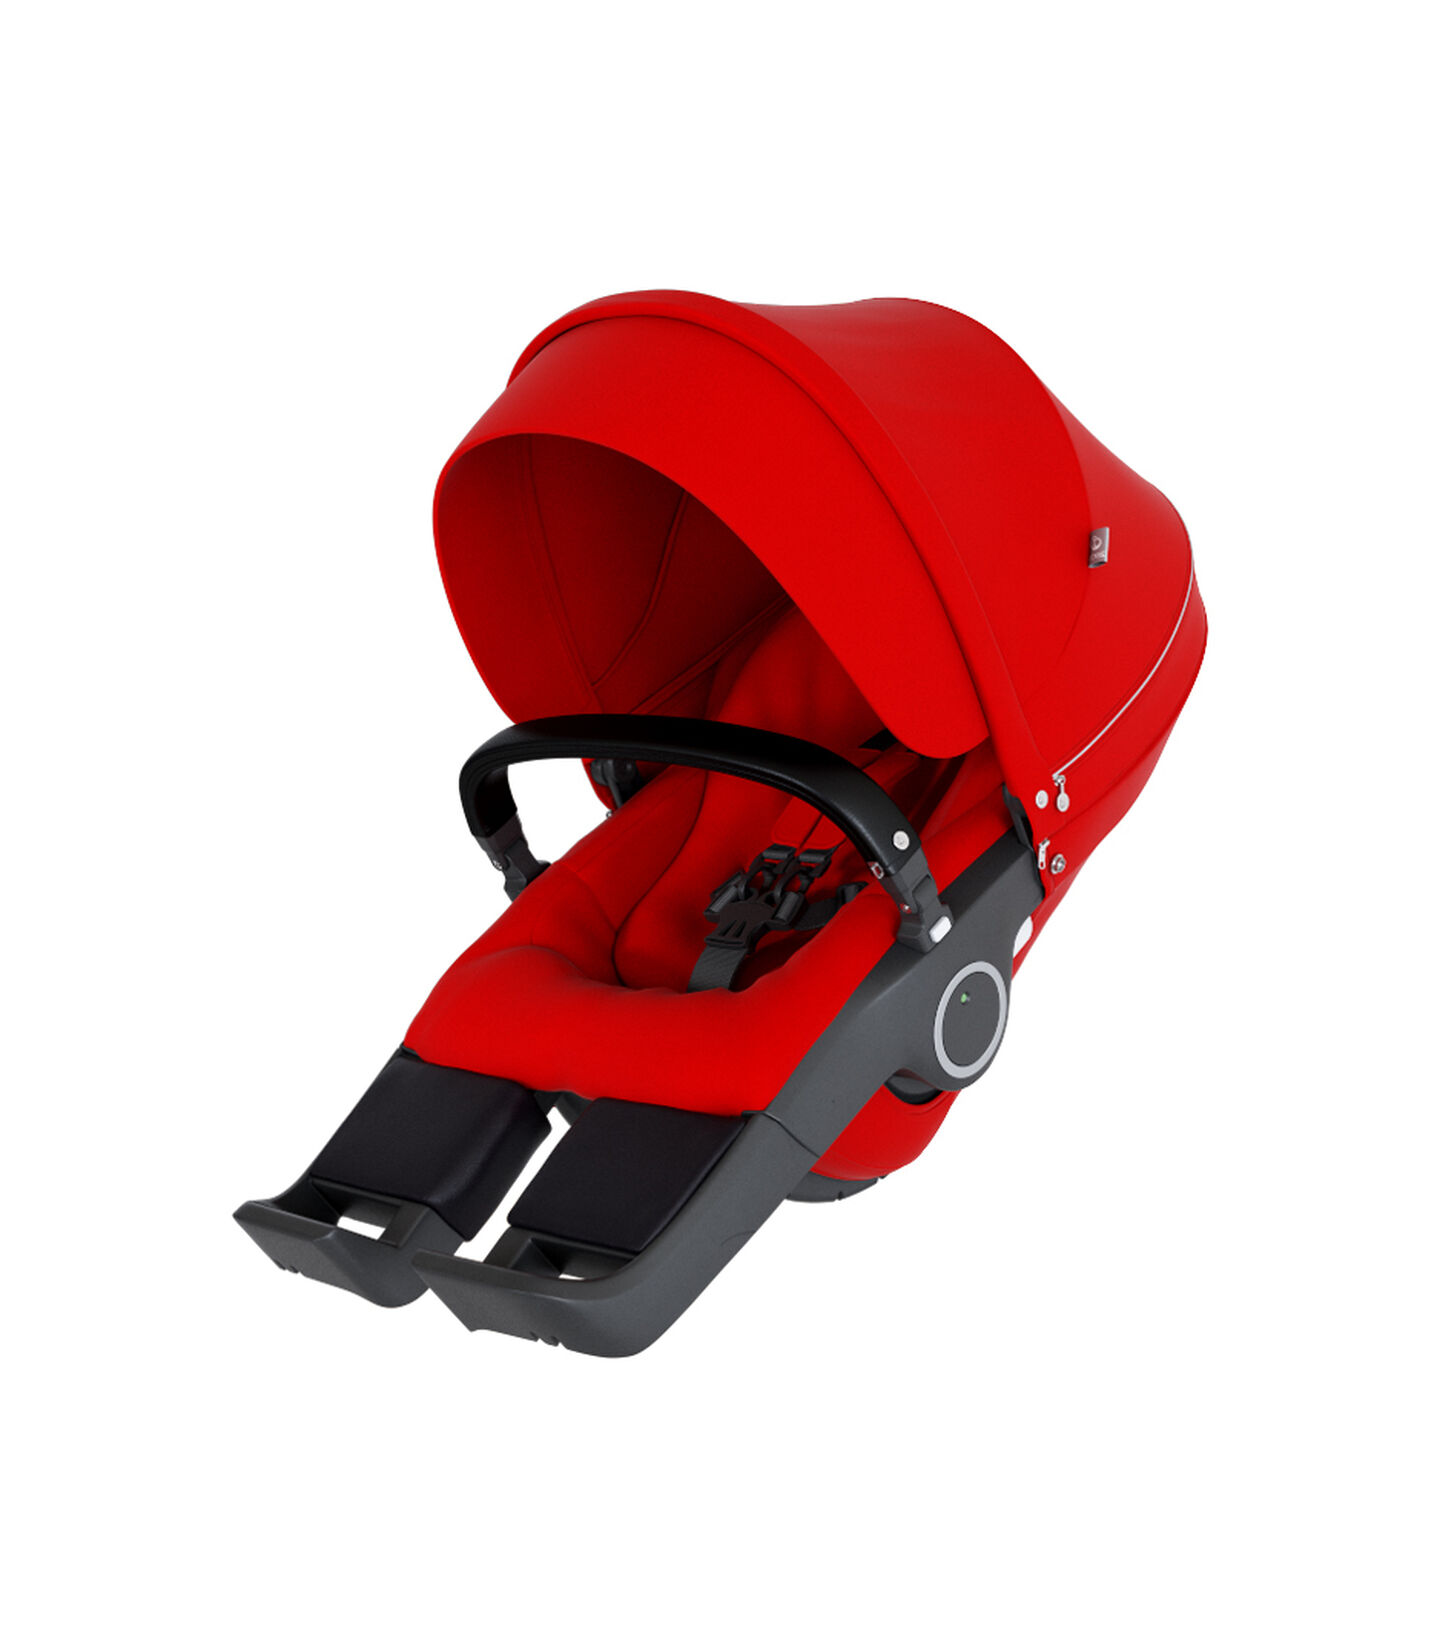 StokkeR Stroller Seat Red Mainview